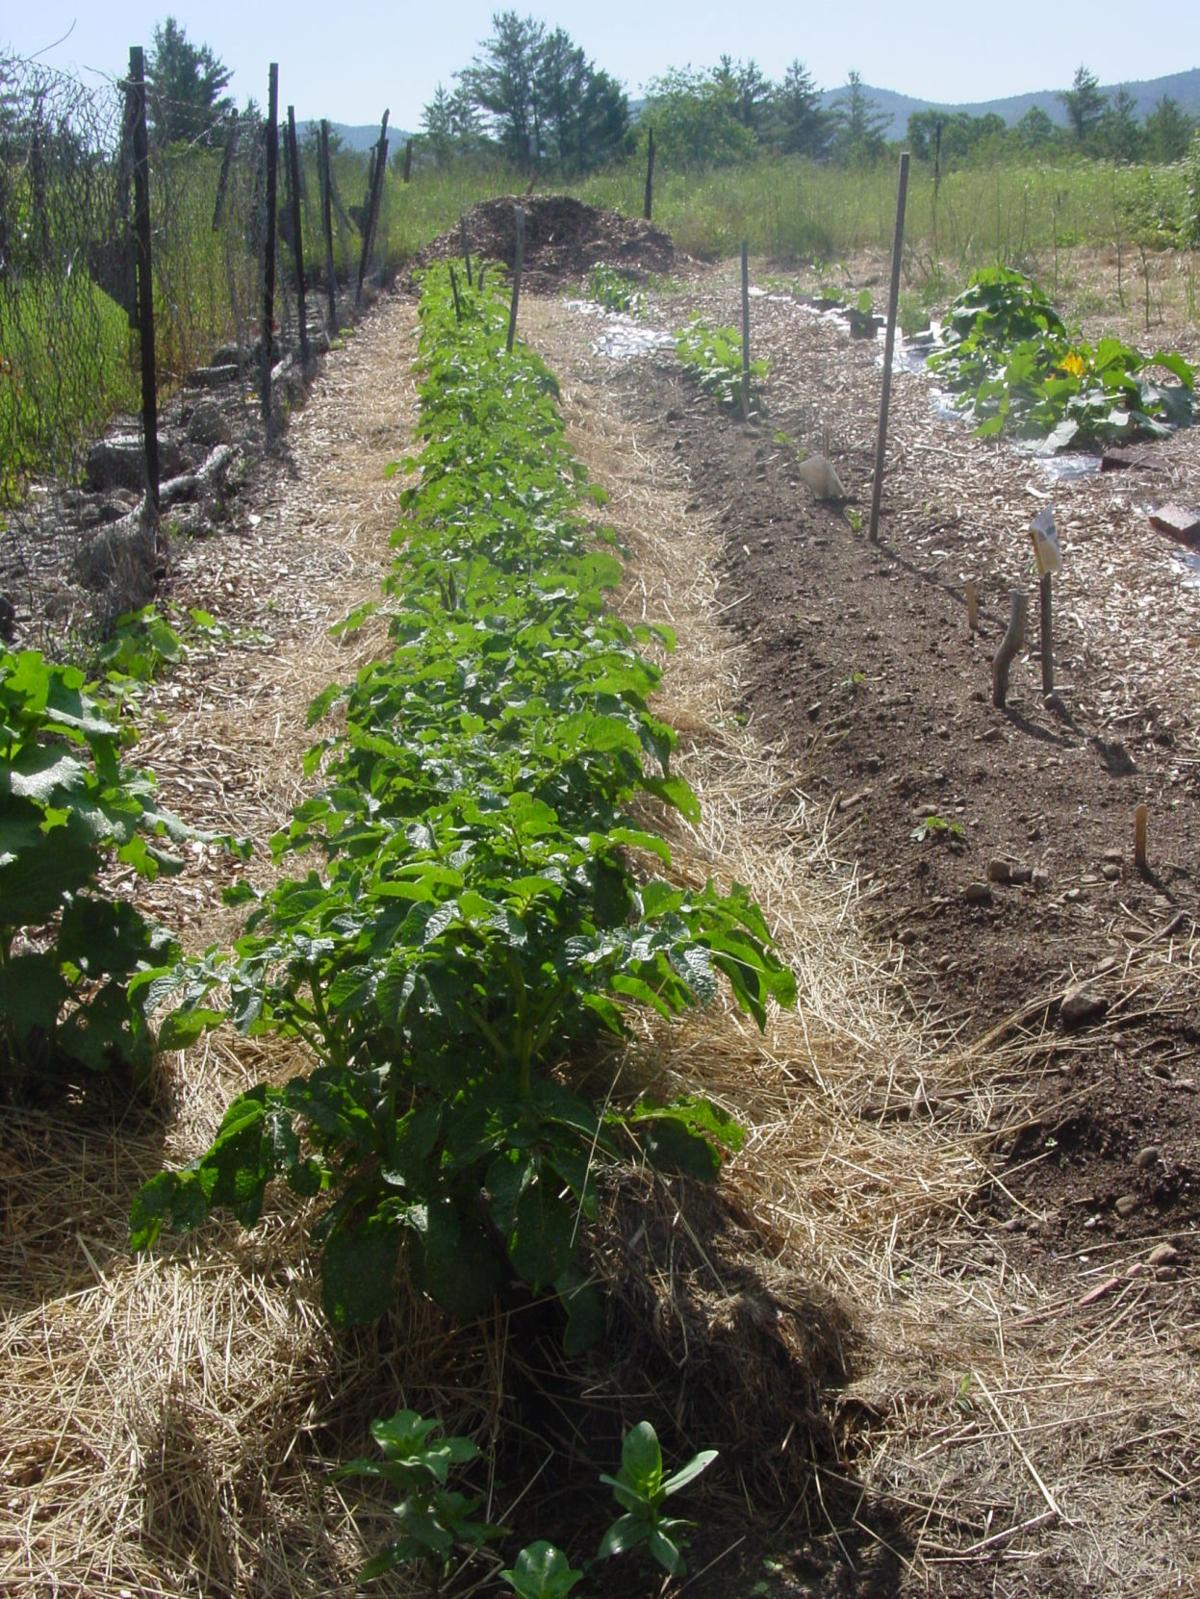 More Thoughts While Weeding: Mulching to maintain soil